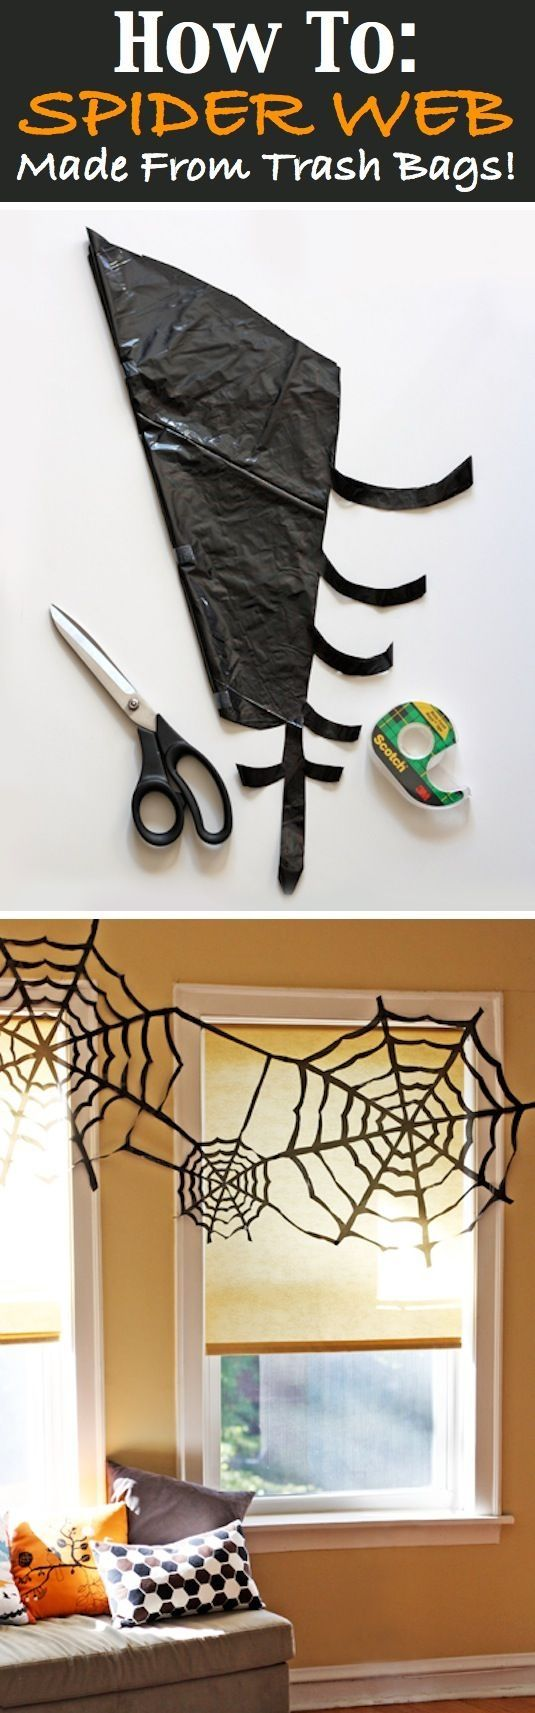 Superheroes Theme - How to make spider webbing from rubbish bags. Perfect for that Spiderman / superhero themed party.